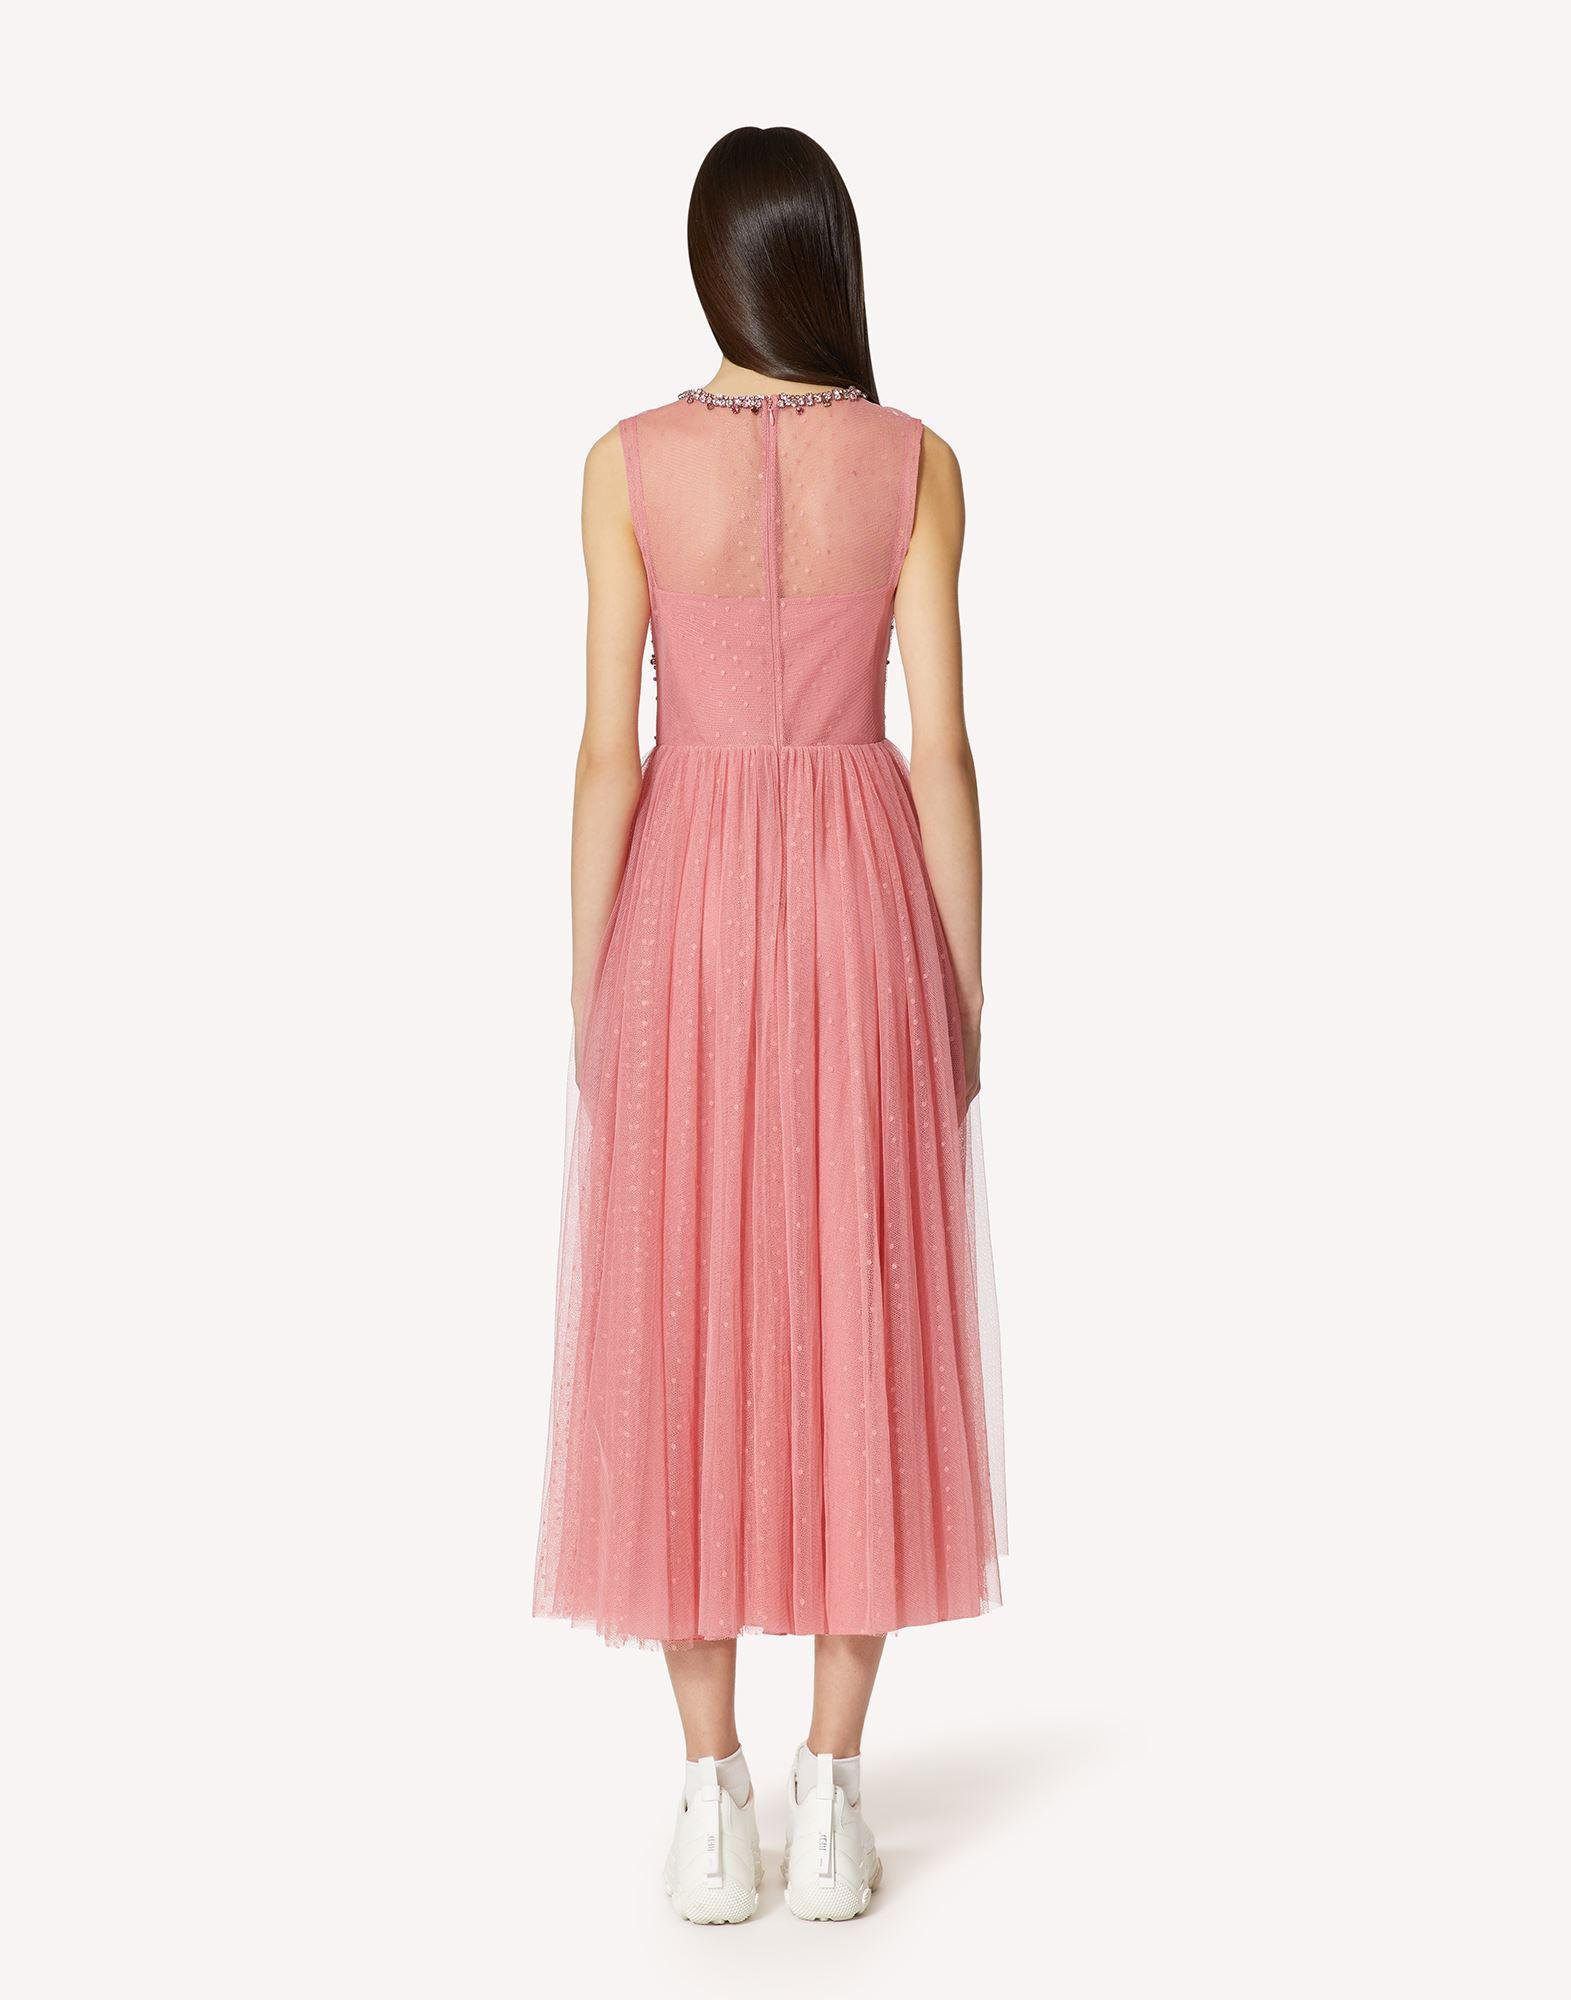 POINT D'ESPRIT TULLE DRESS WITH RHINESTONE EMBROIDERY 1